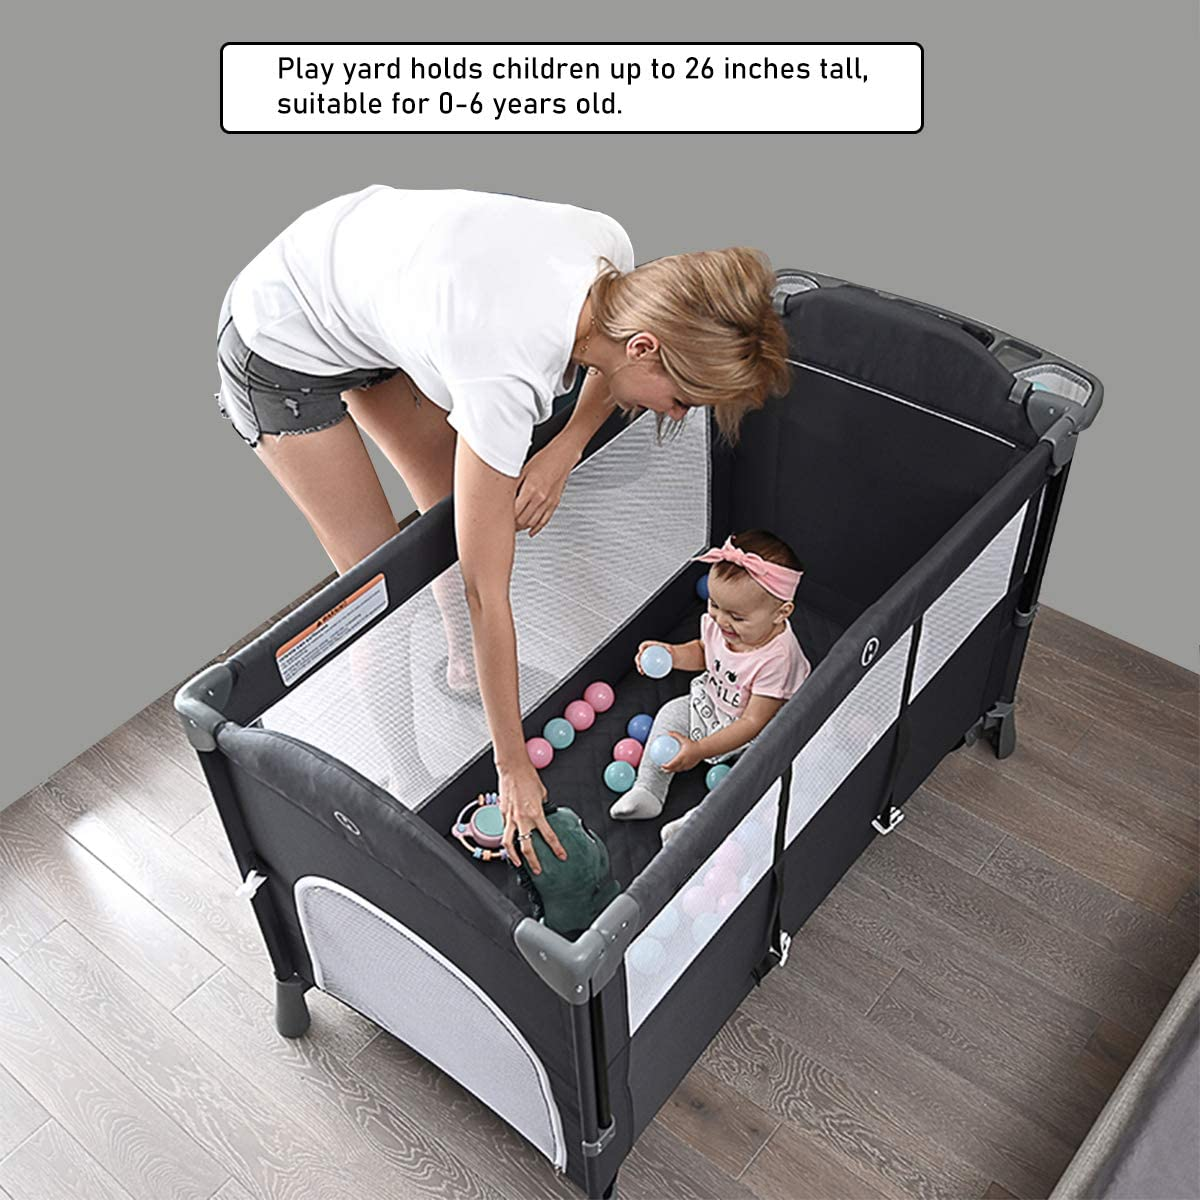 Buy 5 in 1 Bedside Bassinet Cribs, Portable Toddler Playpen Travel Crib, Foldable  Baby Cradle Sleeper with Bassinet Includes Mattress, Diaper Changing Table,  Removable Wheels, Hanging Toys Online in Vietnam. B08SM5VT91